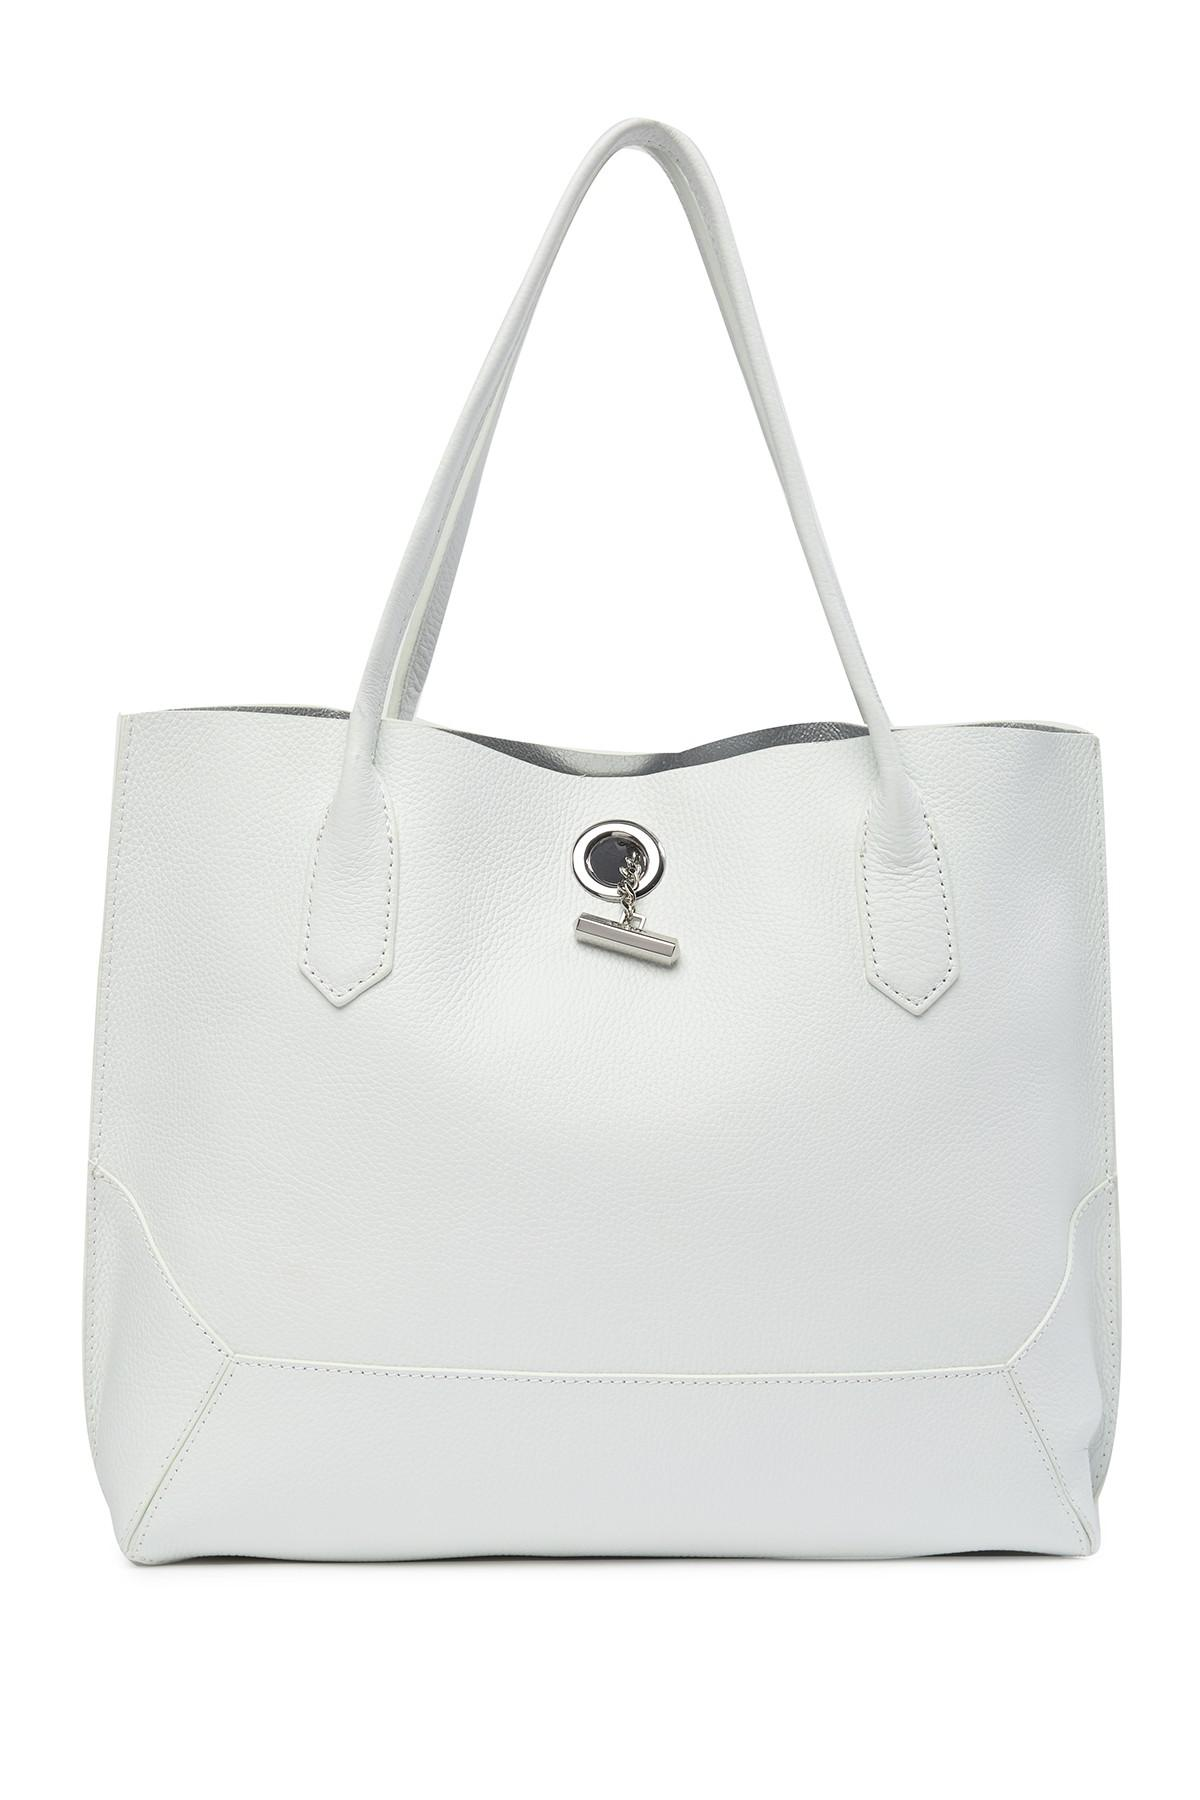 628b9a5f7 Lyst - Botkier Waverly Leather Tote in White